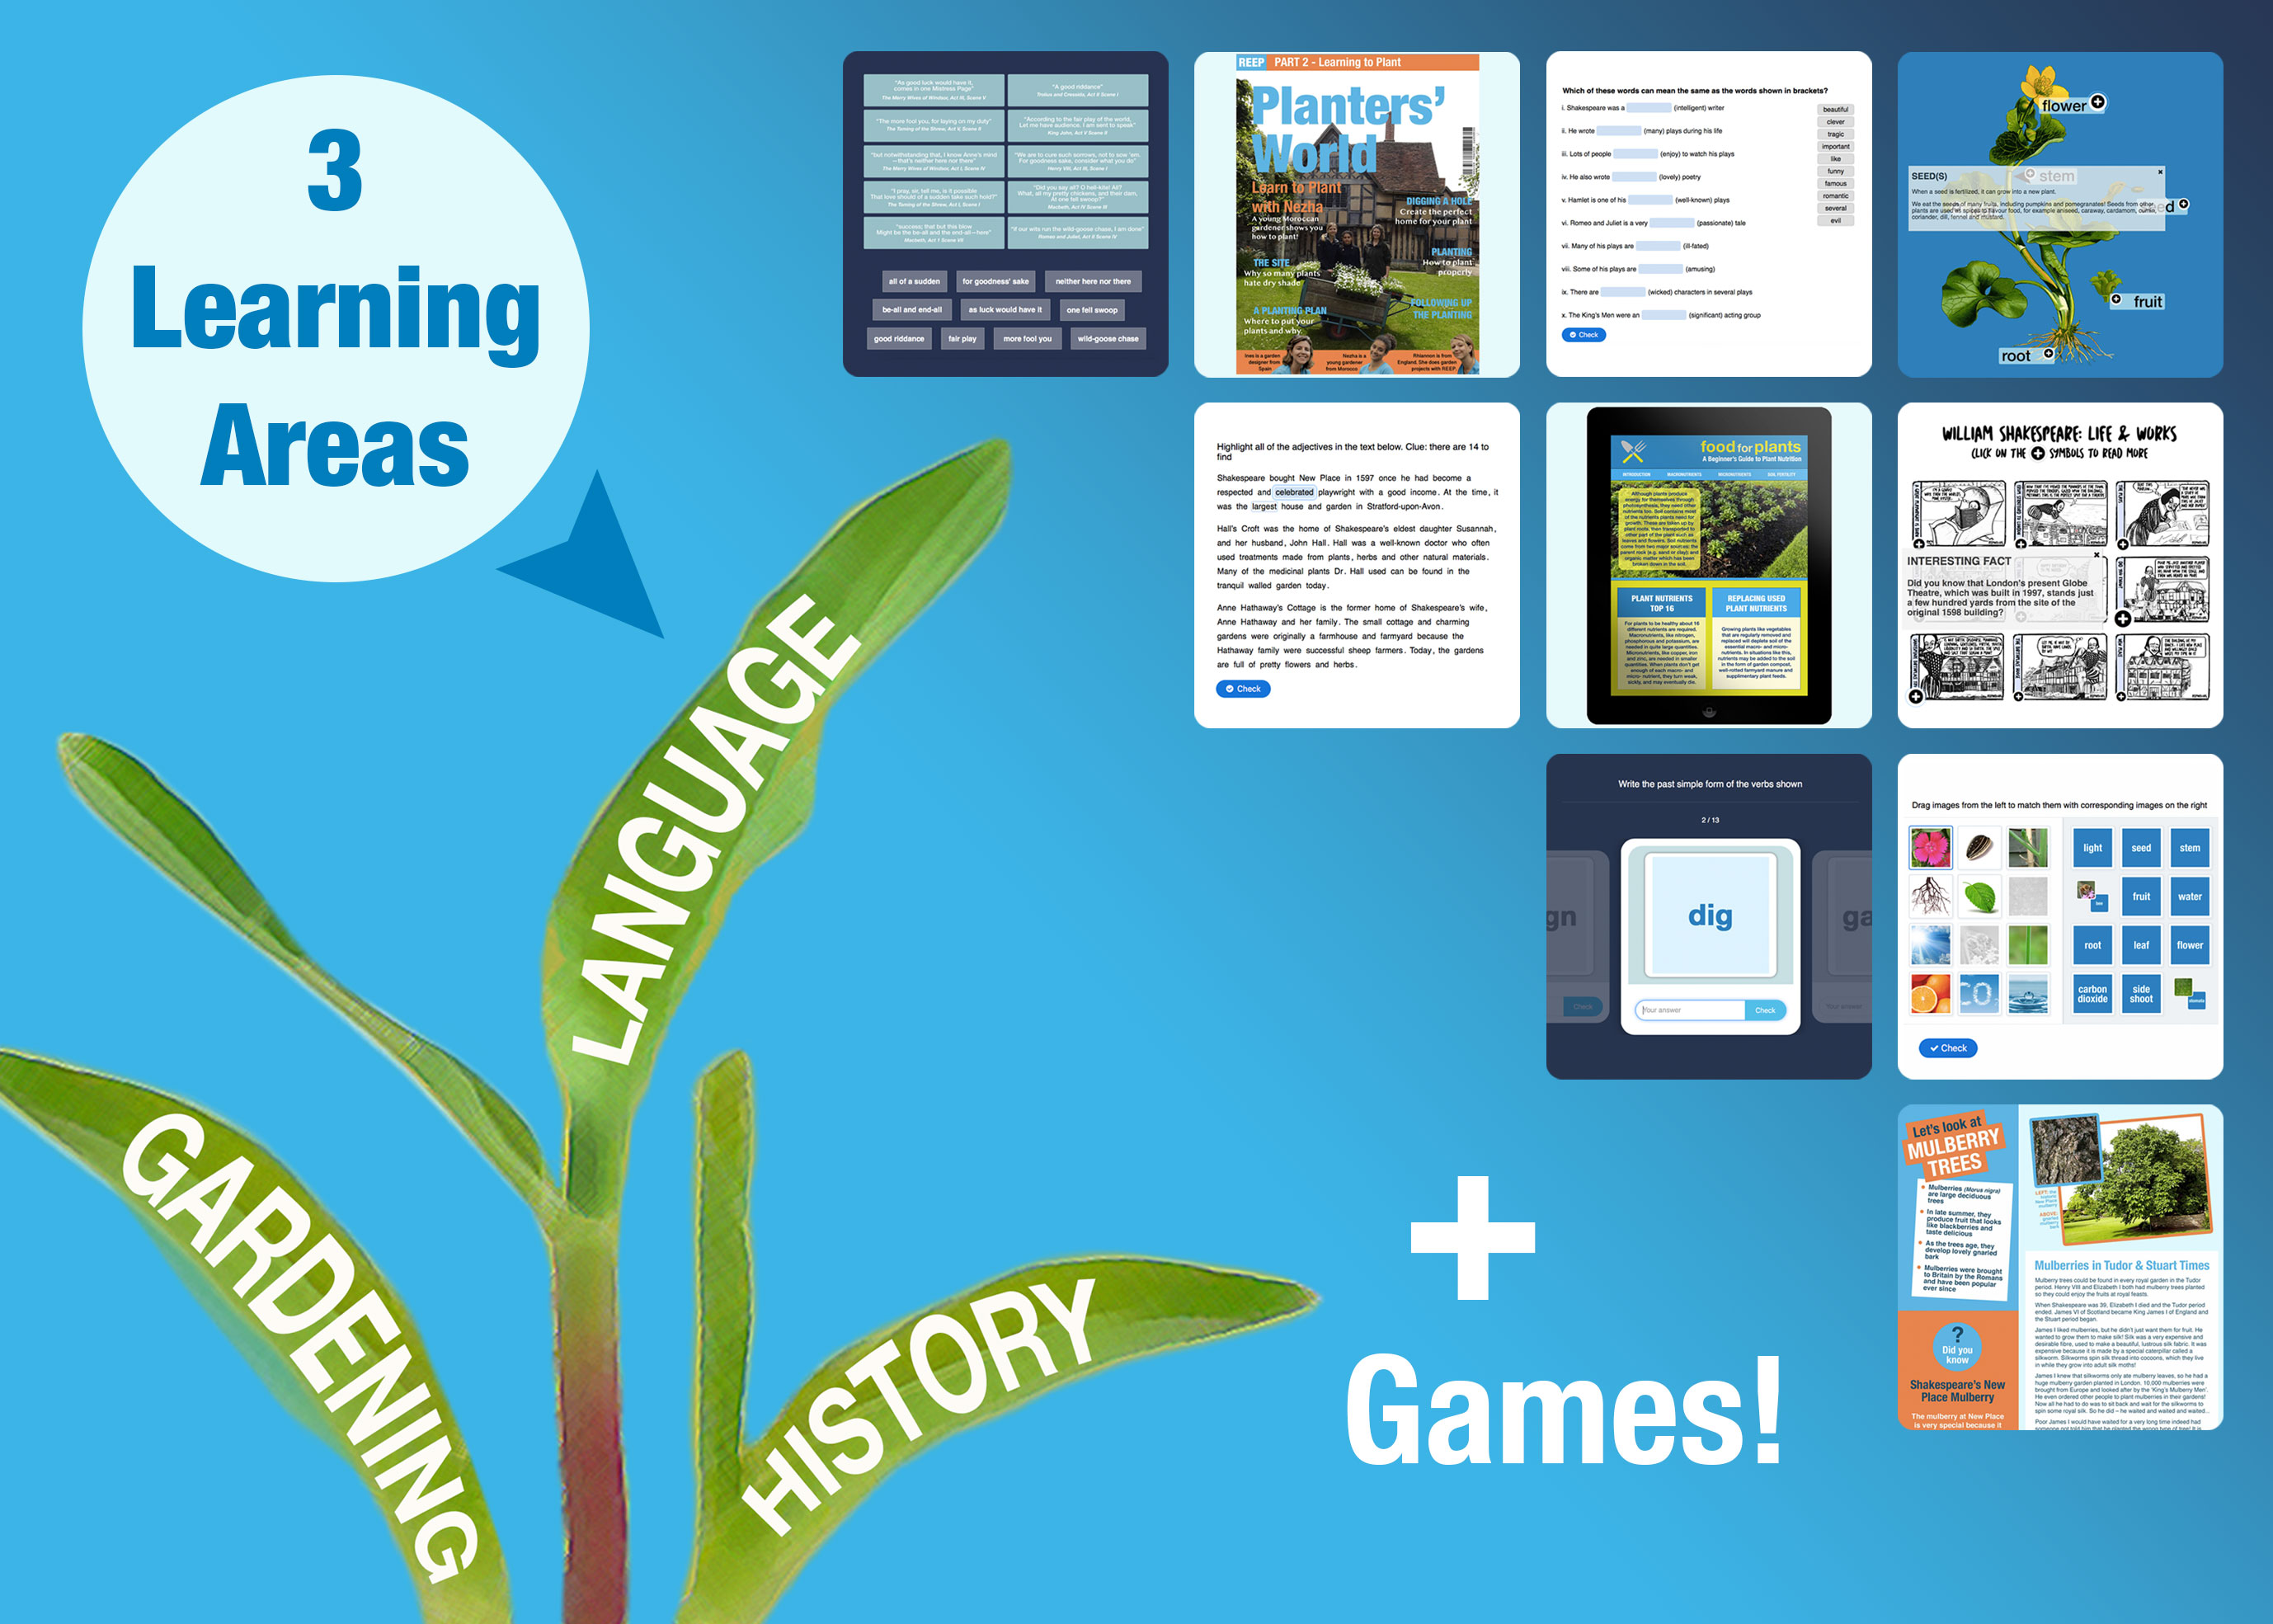 ETG - 3 Learning Areas: Gardening, Language and History